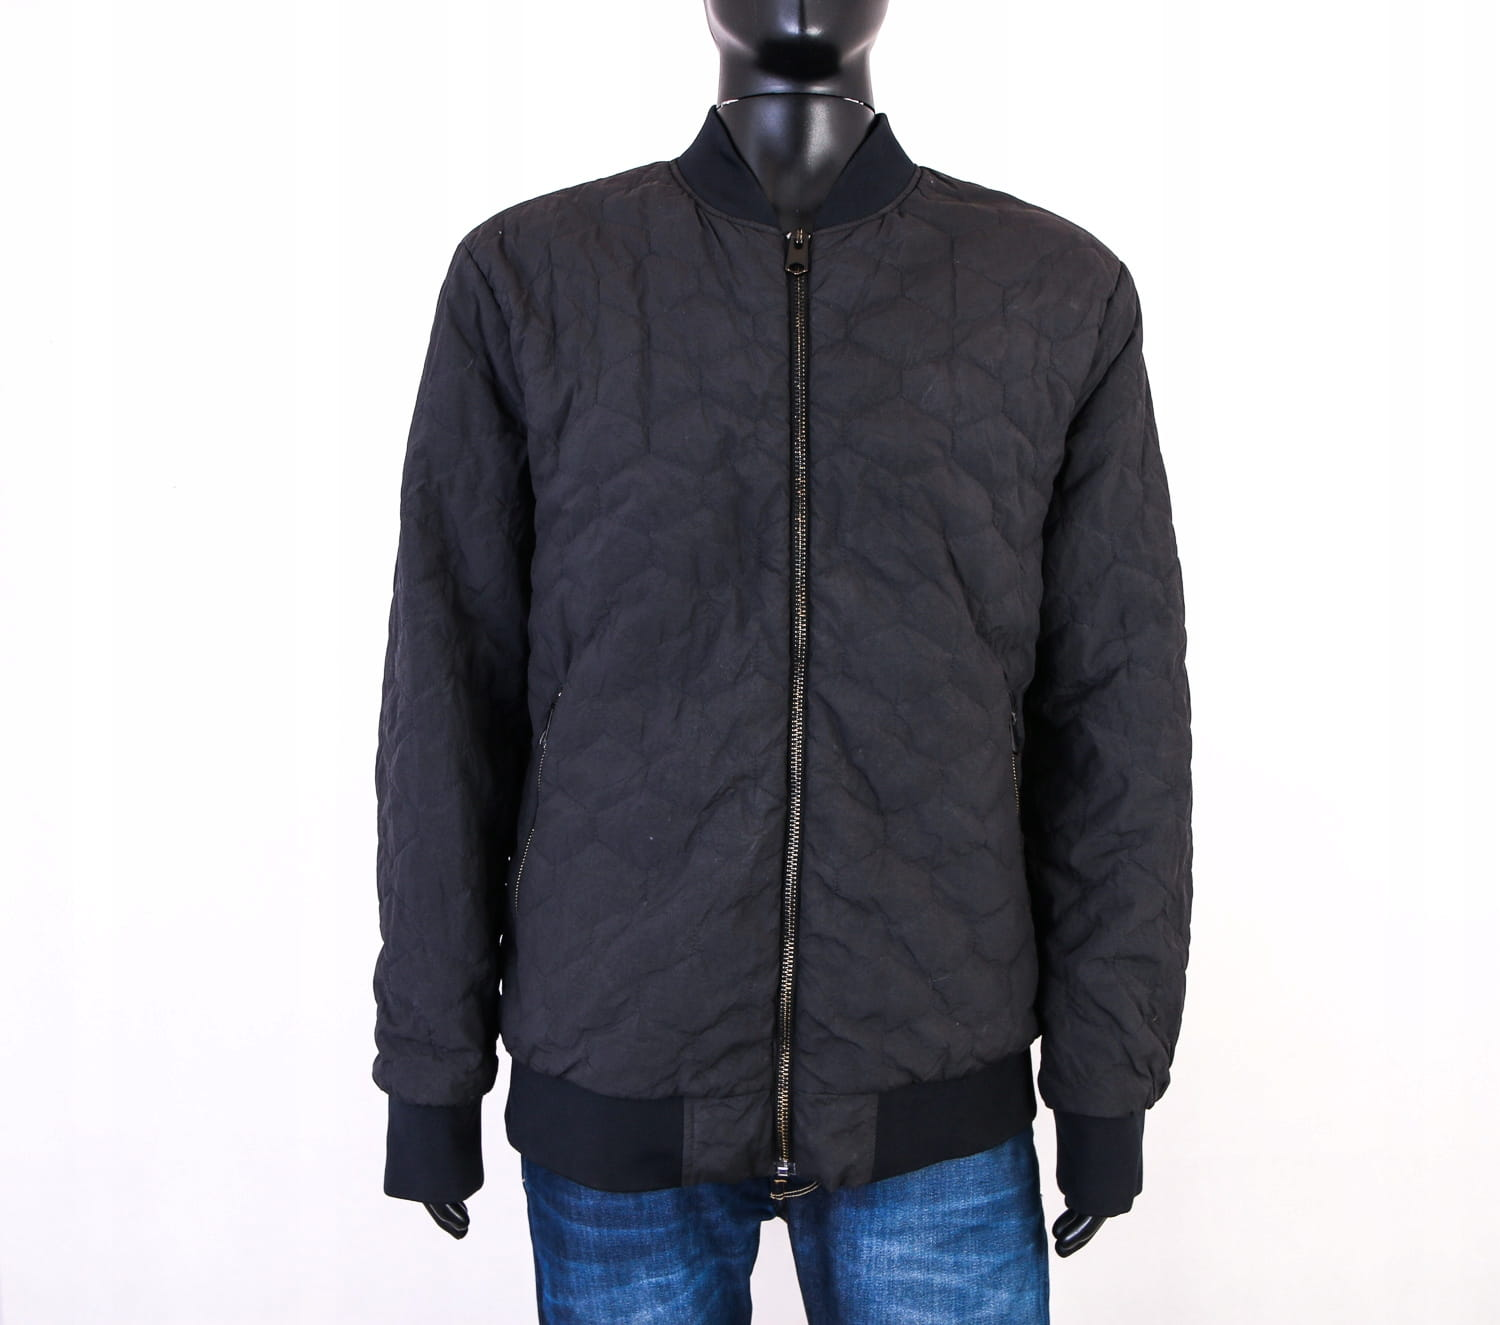 Details About X H M Mens Jacket Quilted Black Size Xl